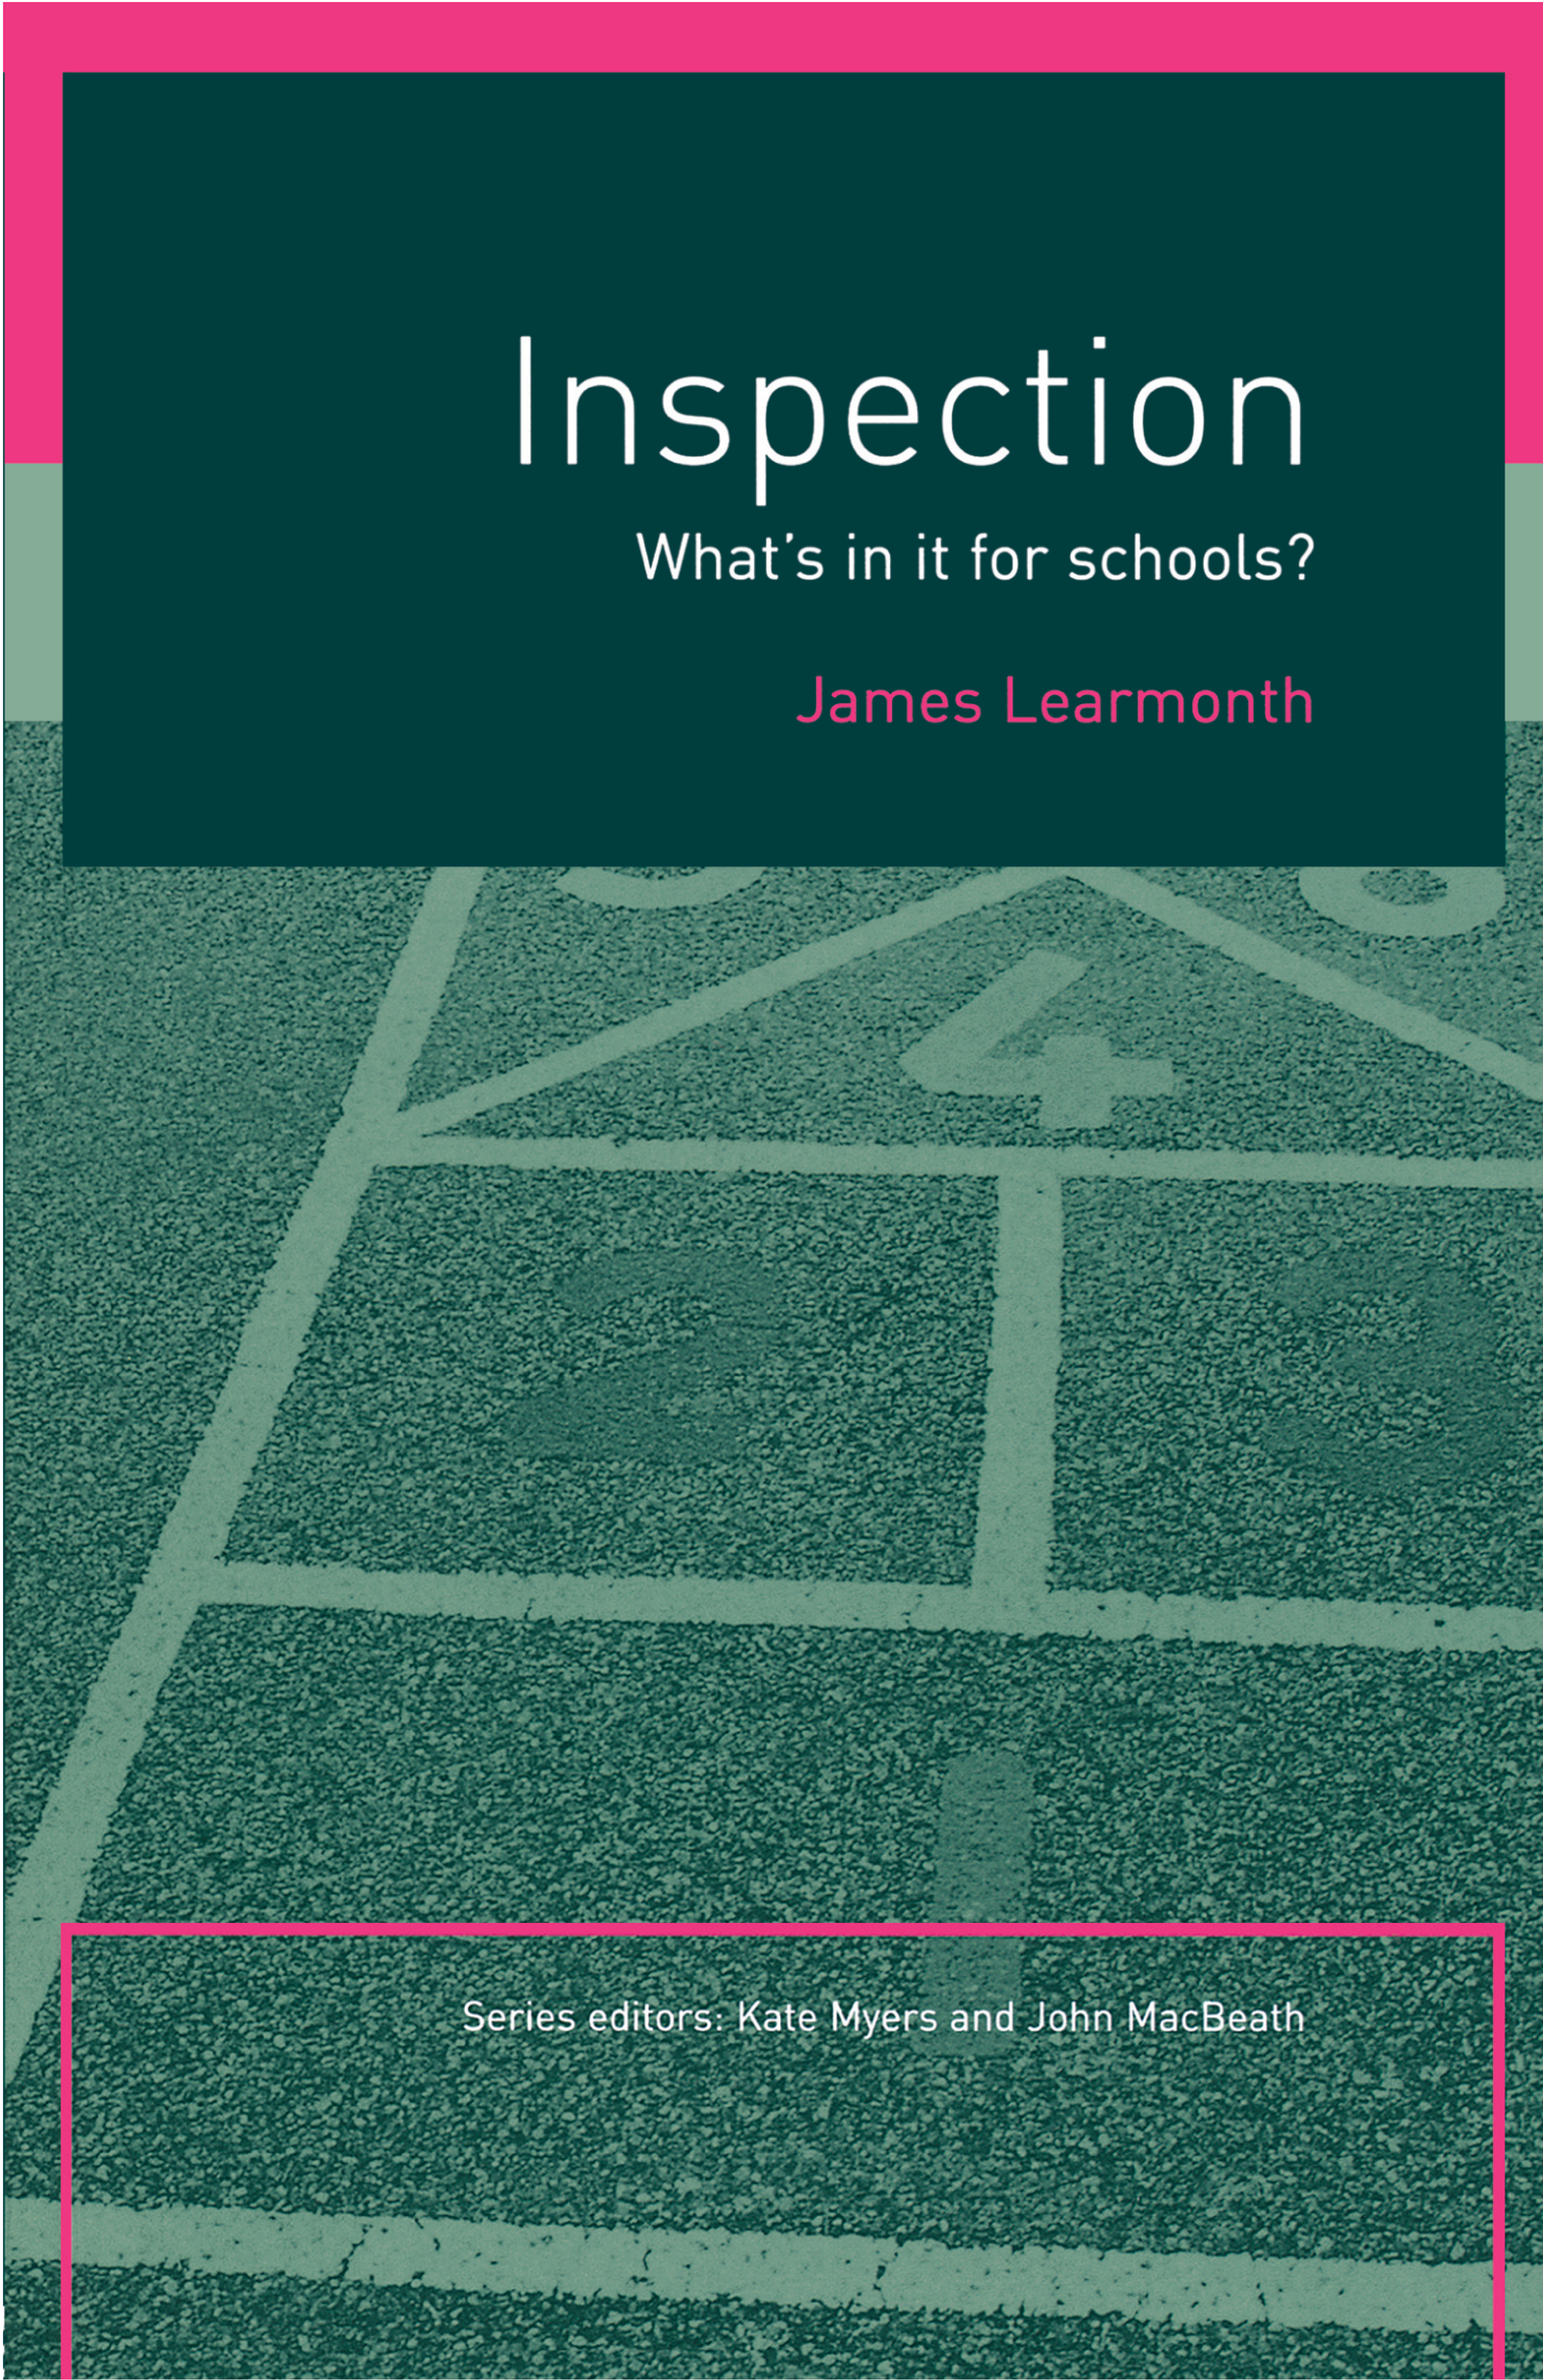 How did the inspection process develop?